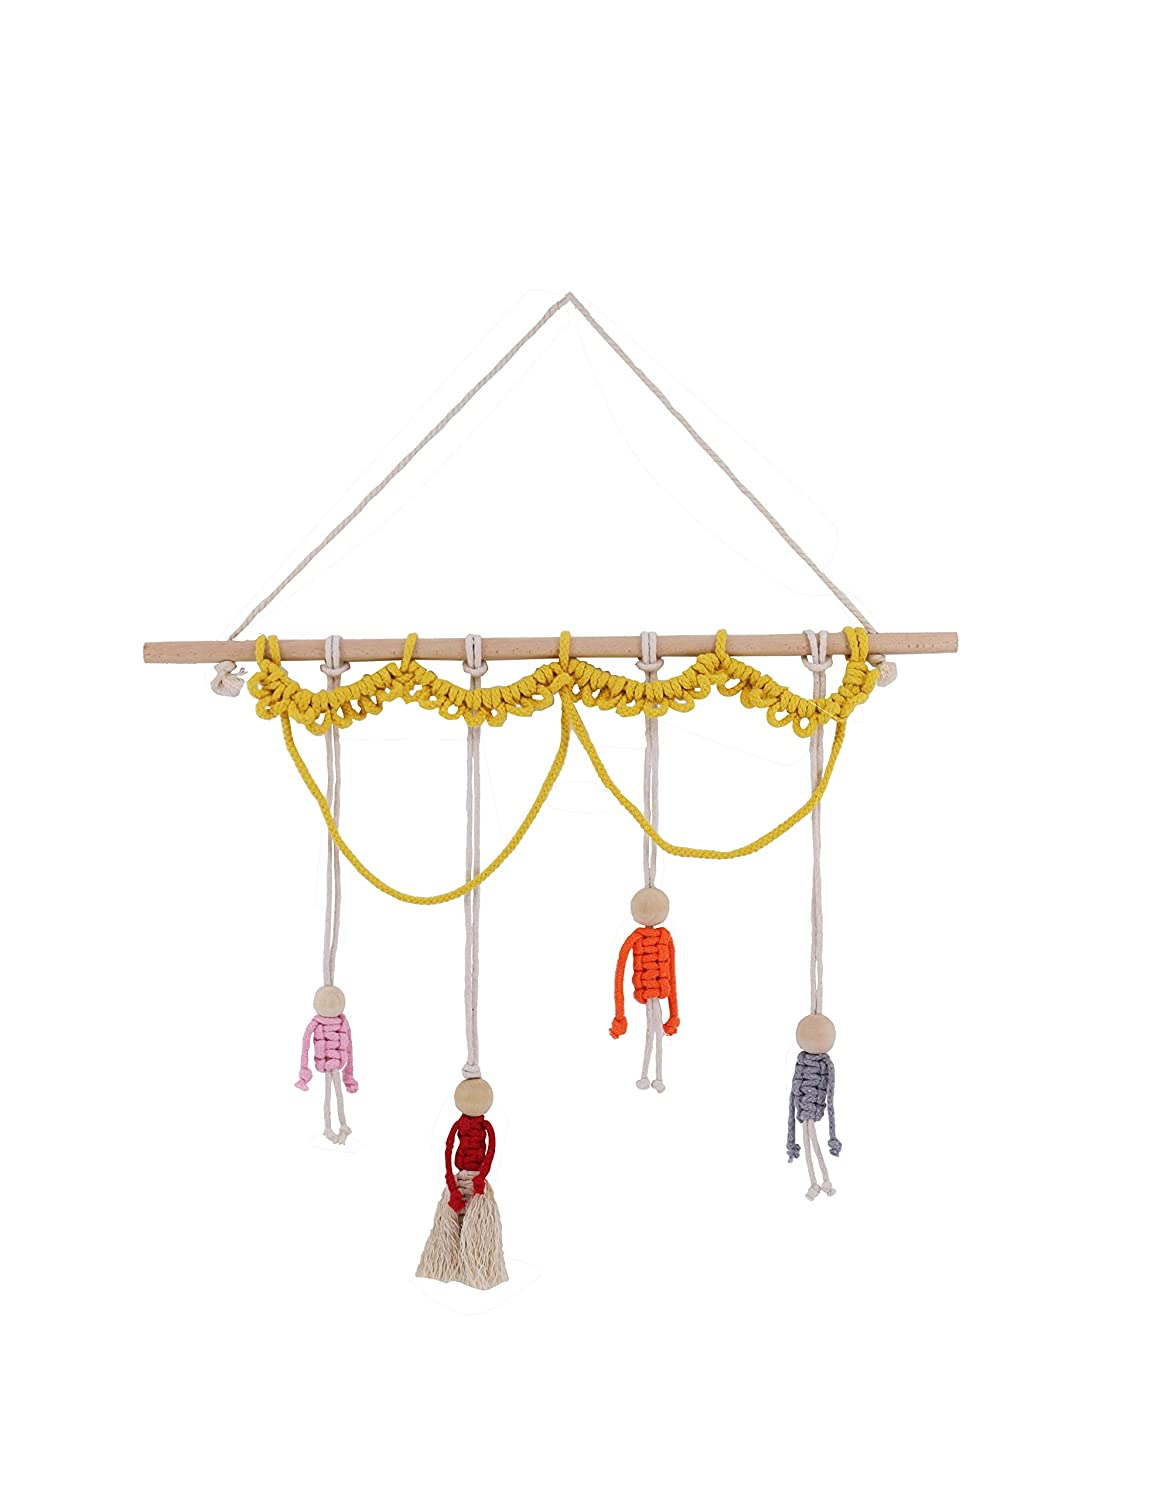 Dancivi Handmade Macrame woven Family Wall New products, world's highest quality popular! x 23.6